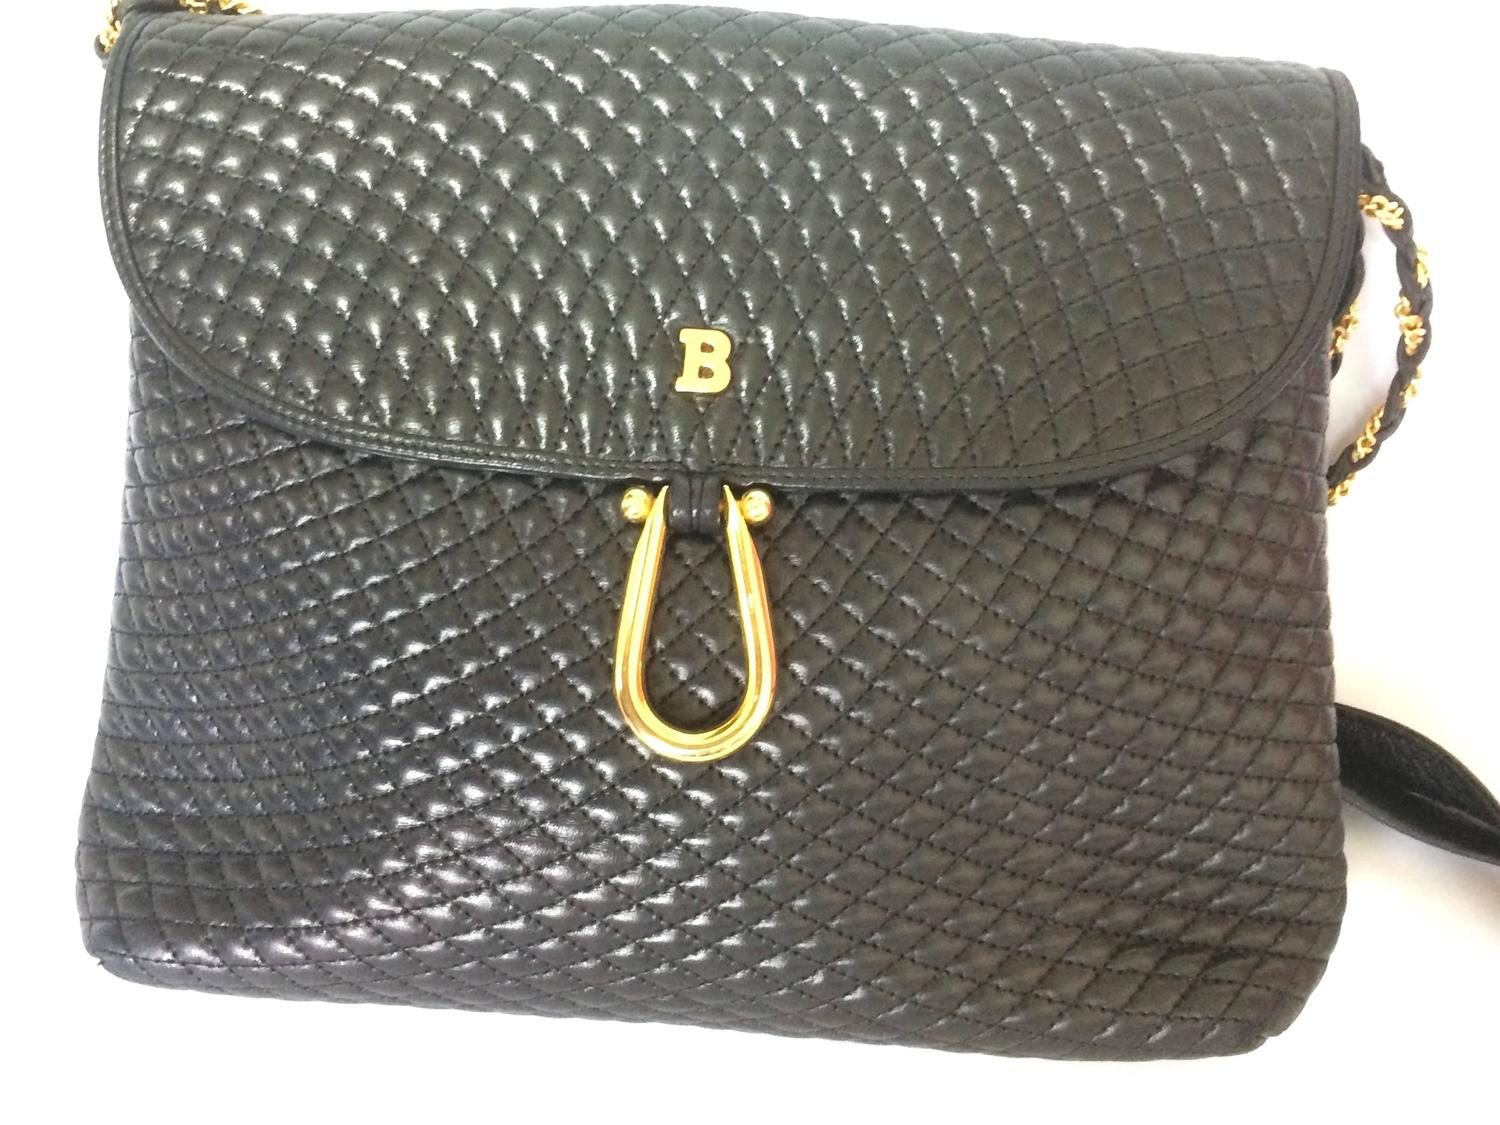 Vintage Bally Classic Black Quilted Leather Shoulder Bag